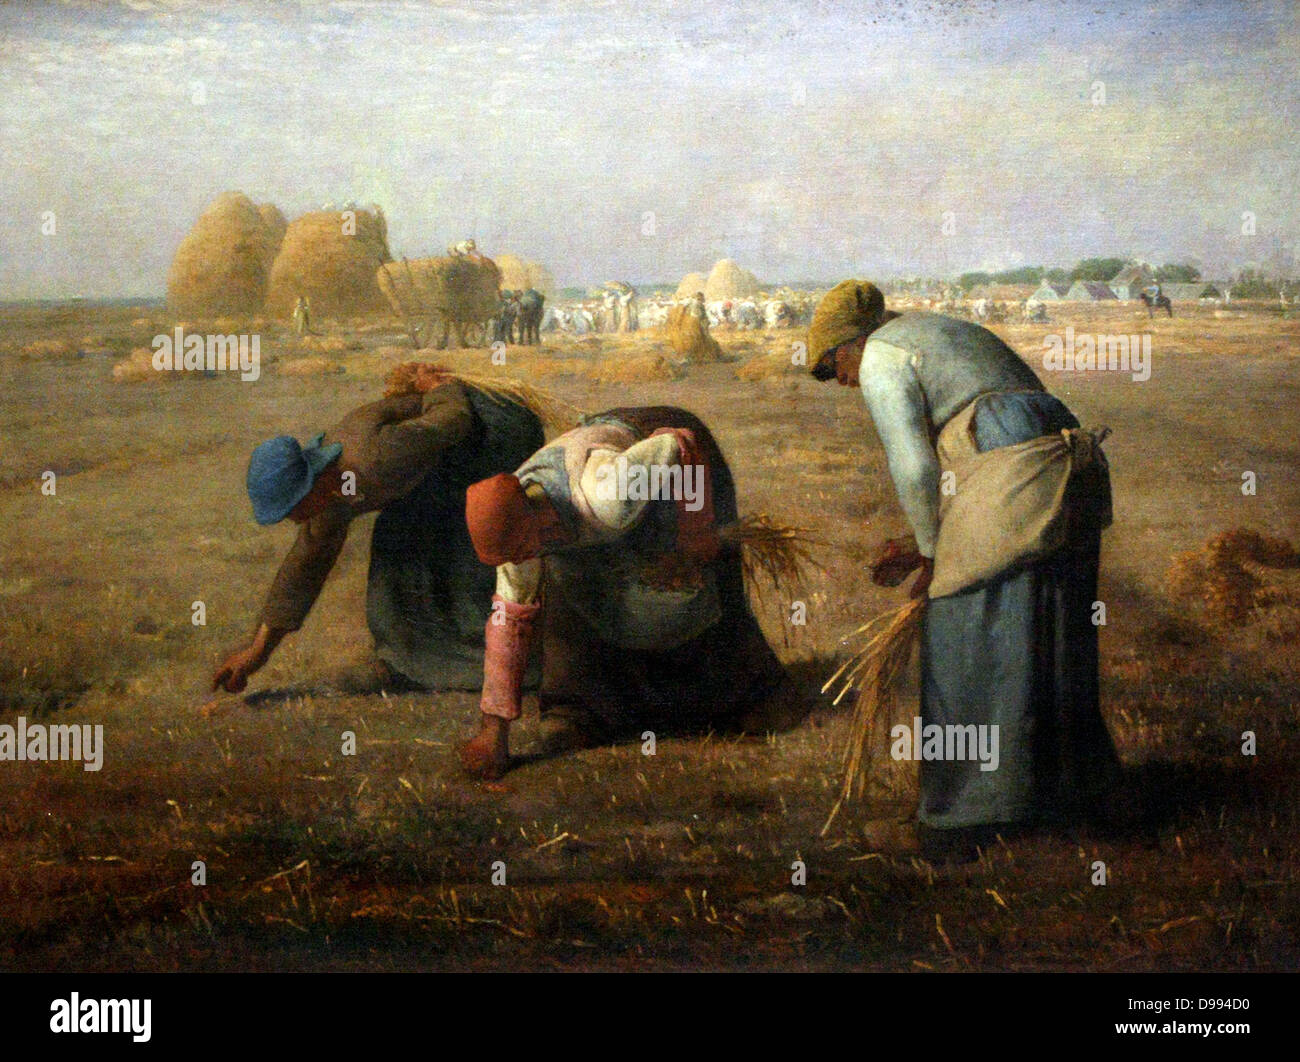 Jean-François Millet (October 4, 1814 – January 20, 1875) was a French painter and one of the founders of the - Stock Image